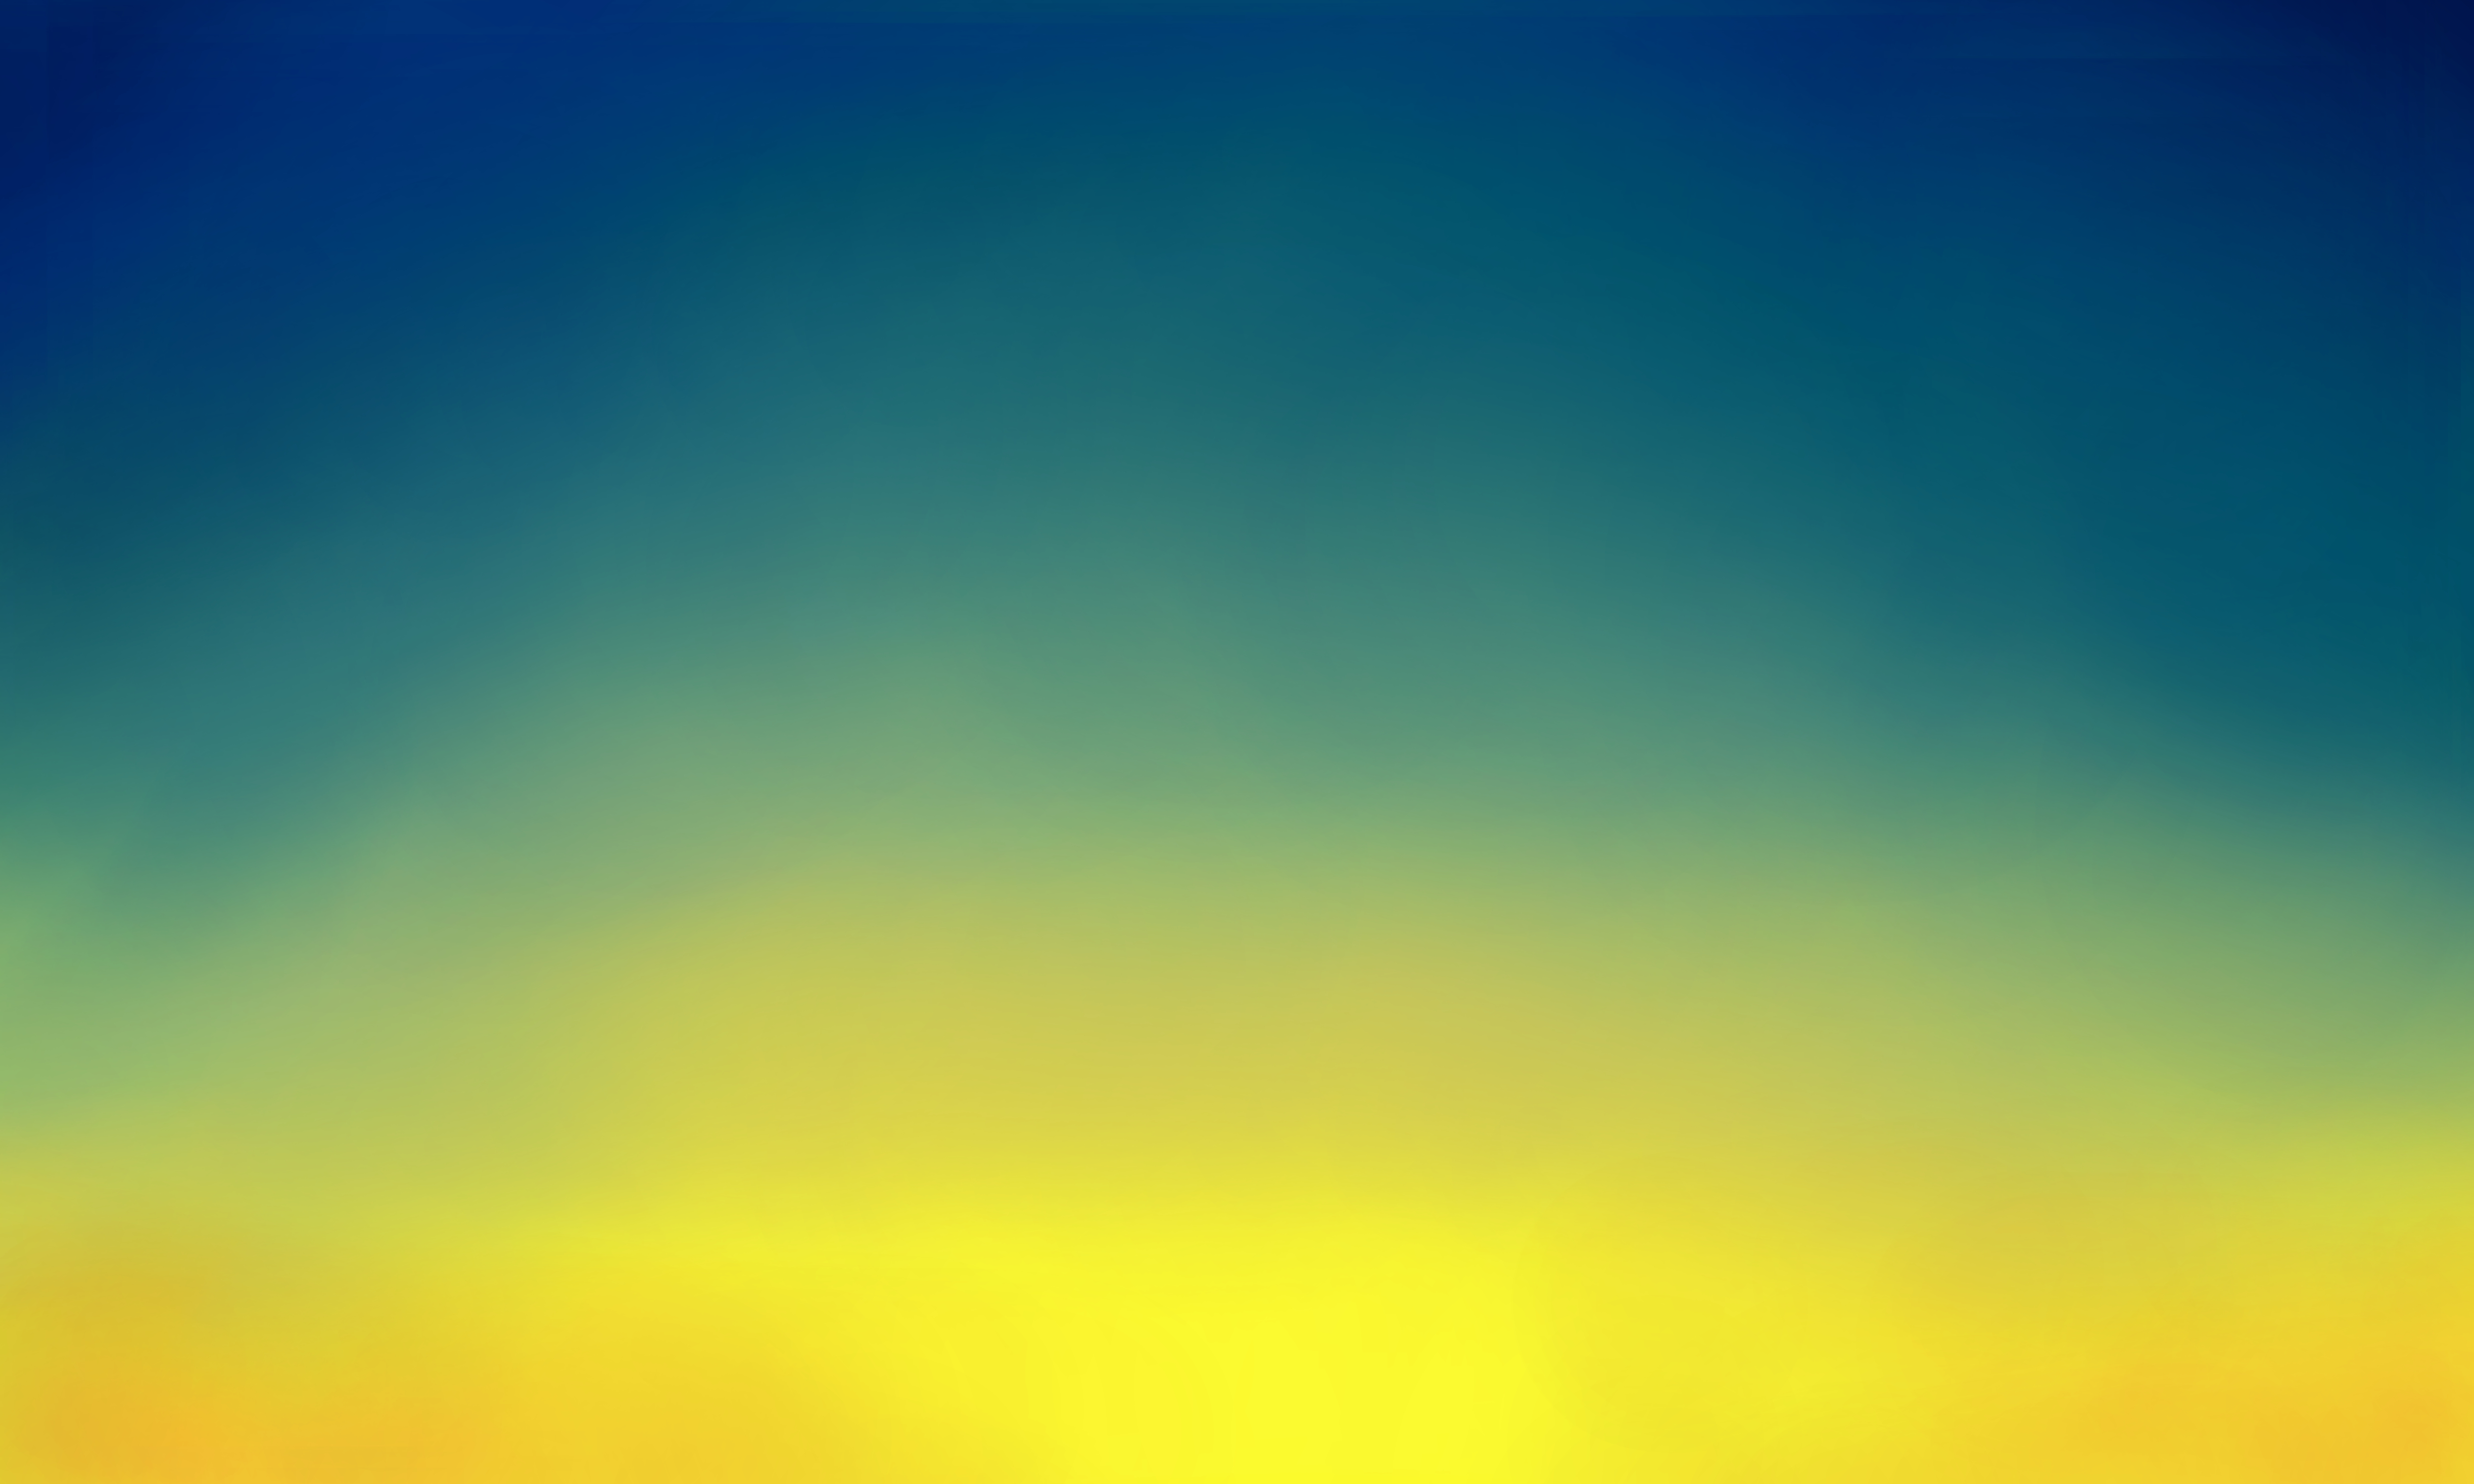 Free To Use Backgrounds